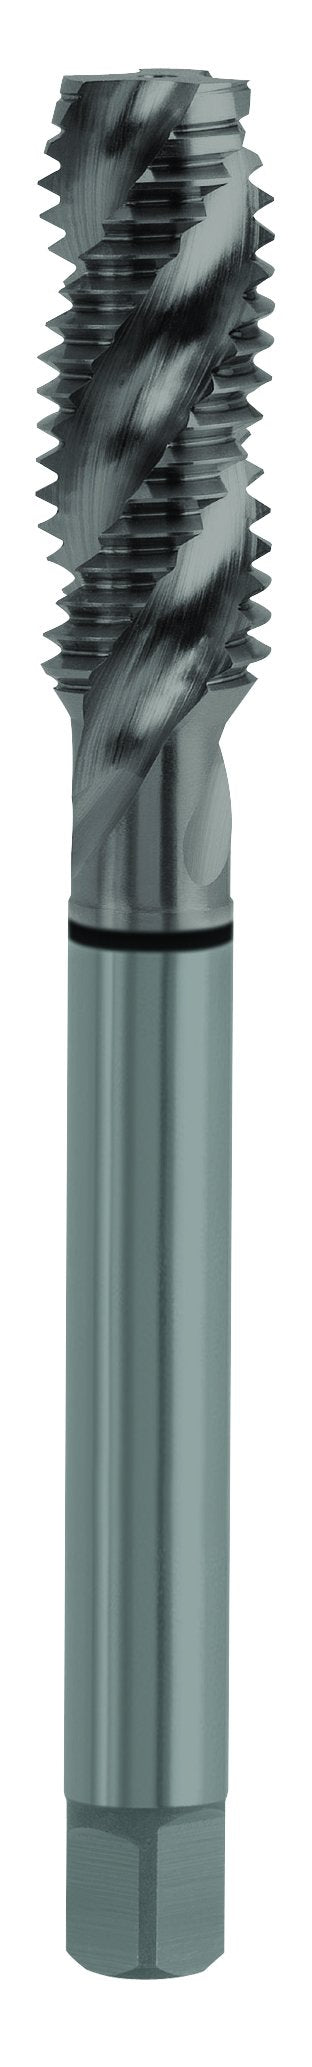 3FL SPIRAL FLUTED STEAM OXIDE COMBO TAP 1/4-28, H4